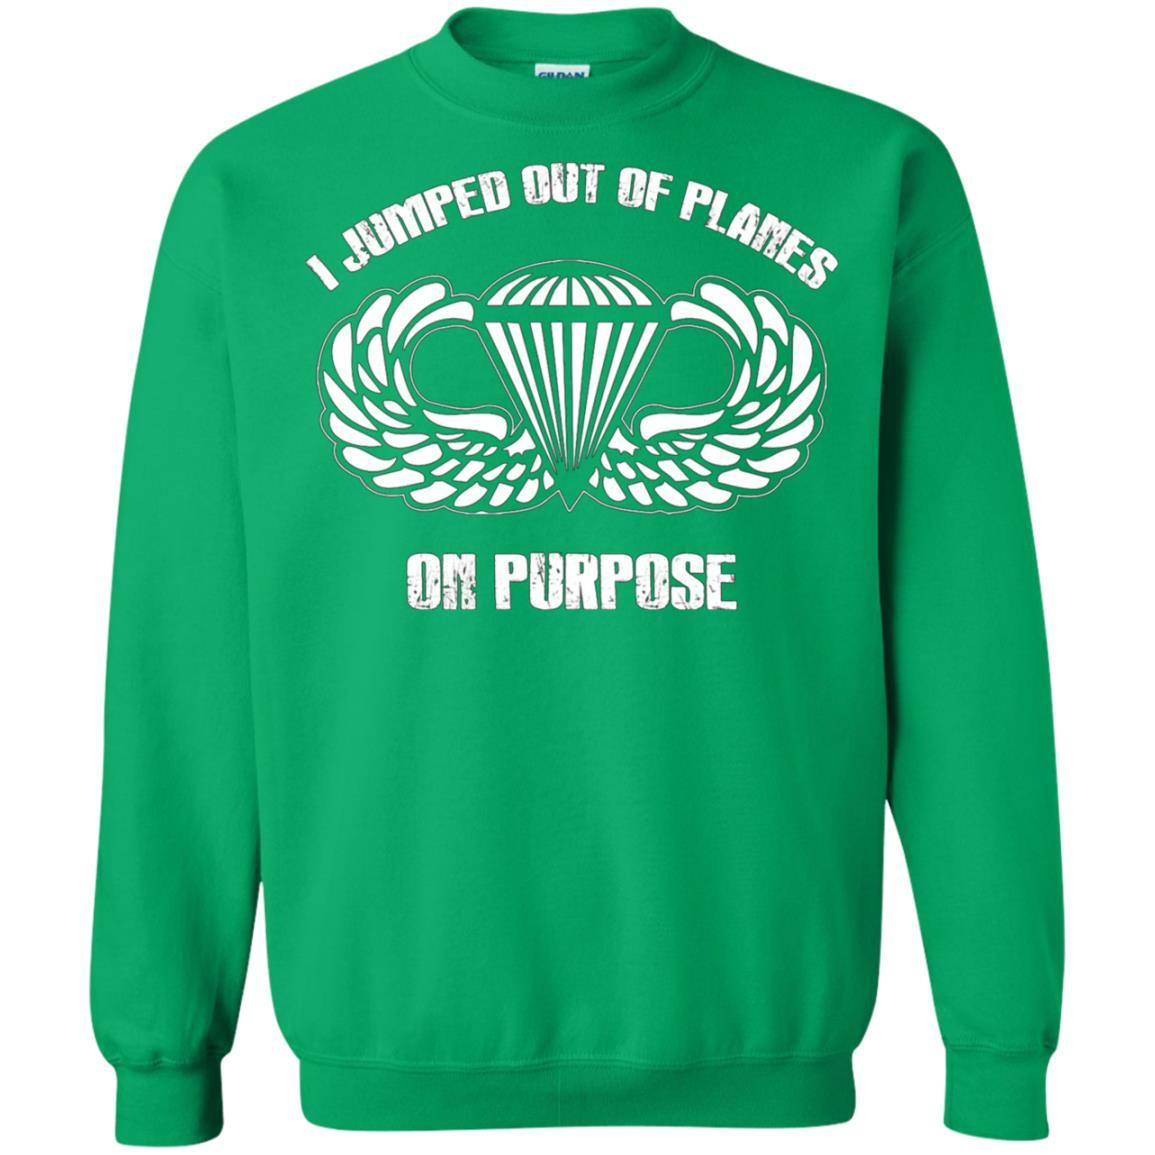 I jumped out of planes on purpose, Airborne - Crewneck Pullover Sweatshirt Irish Green / 5XL